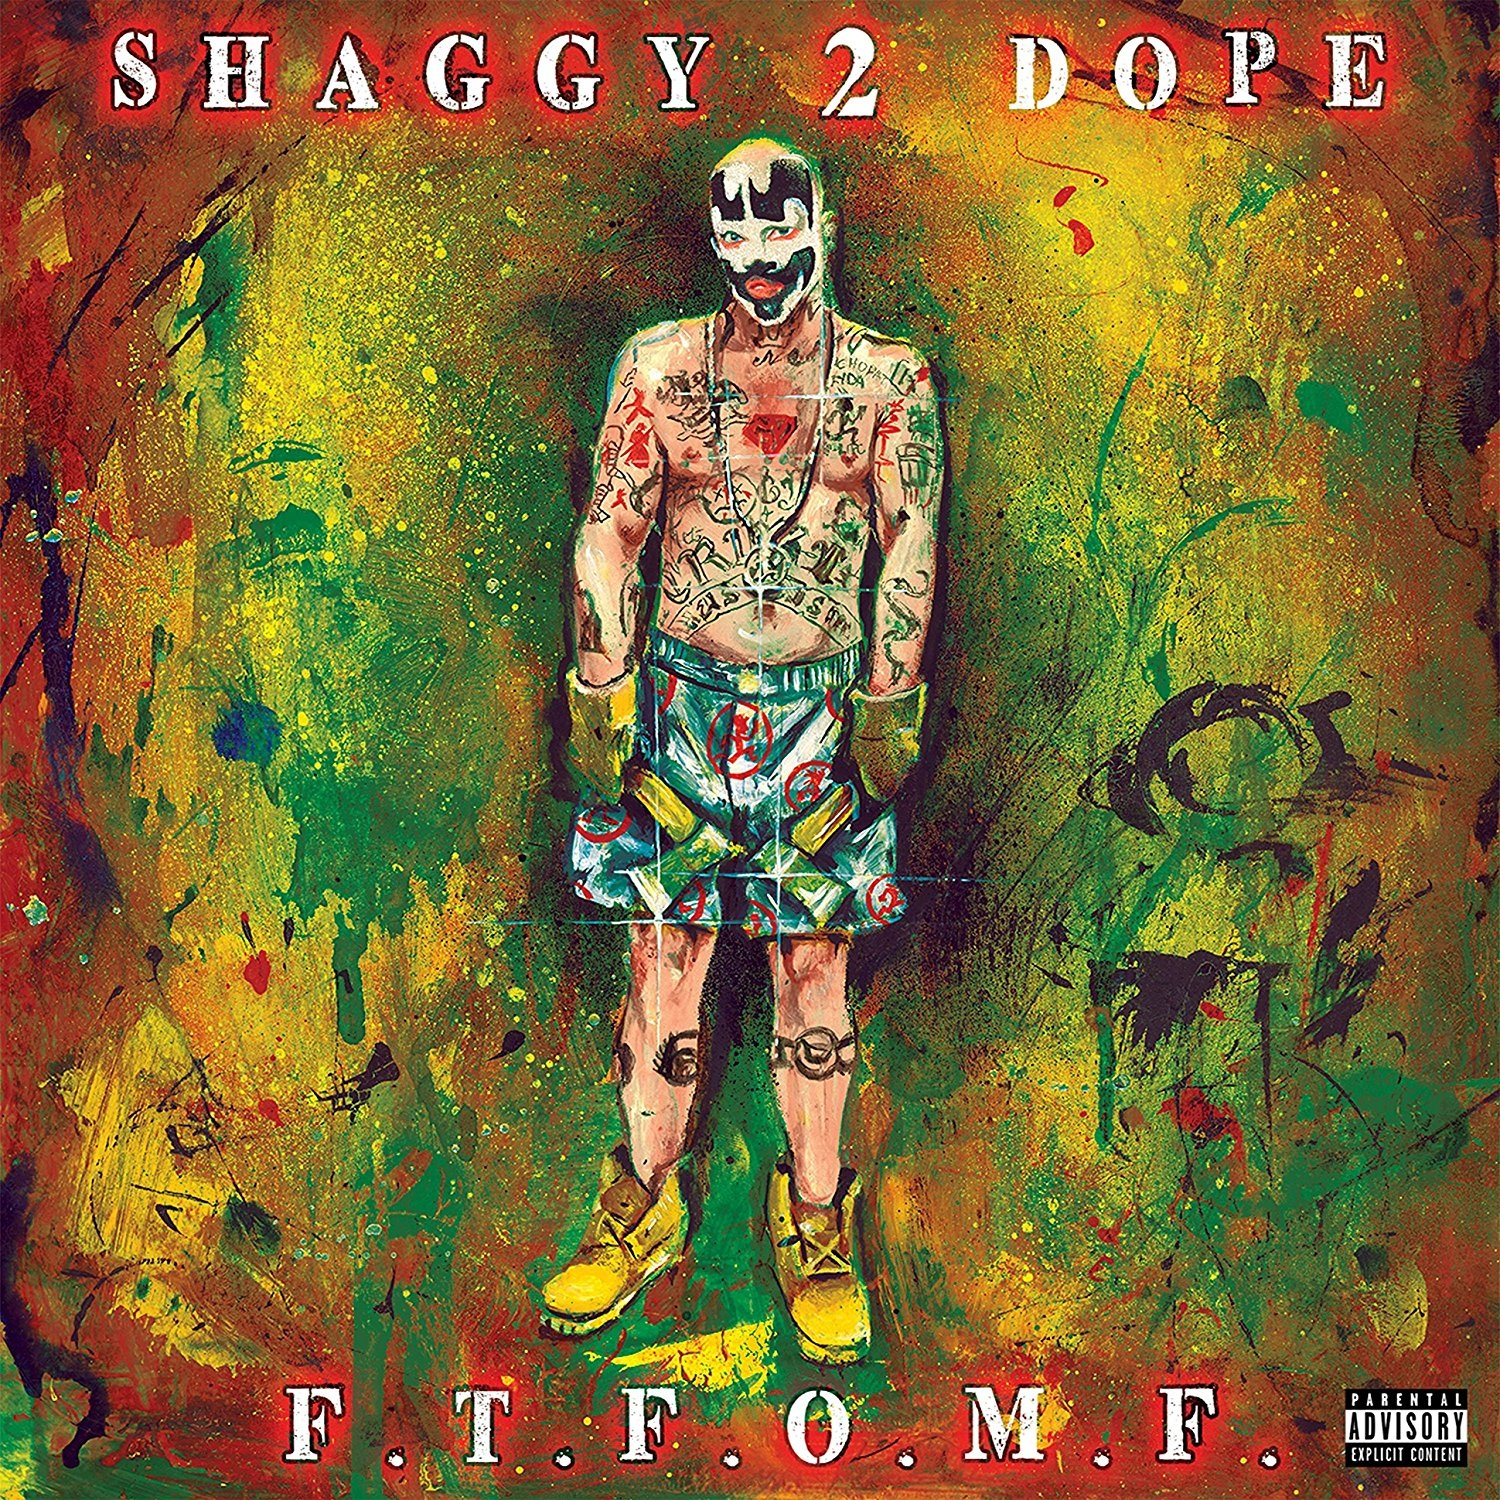 Shaggy 2 Dope Day Next Friday, May 26th!